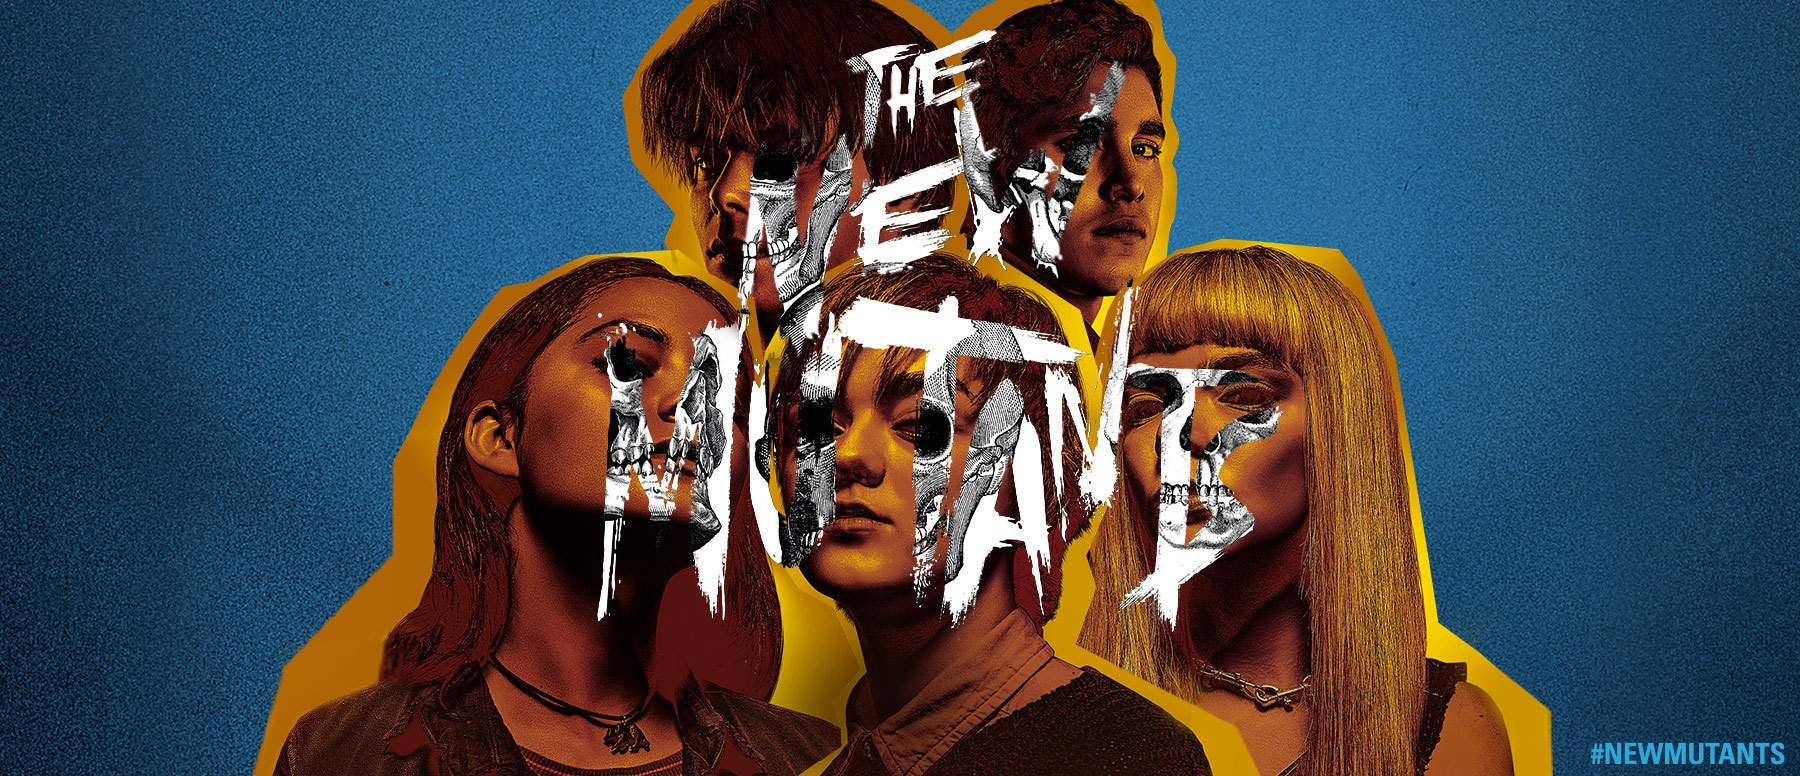 The New Mutants Hero **IN THEATERS NOW**